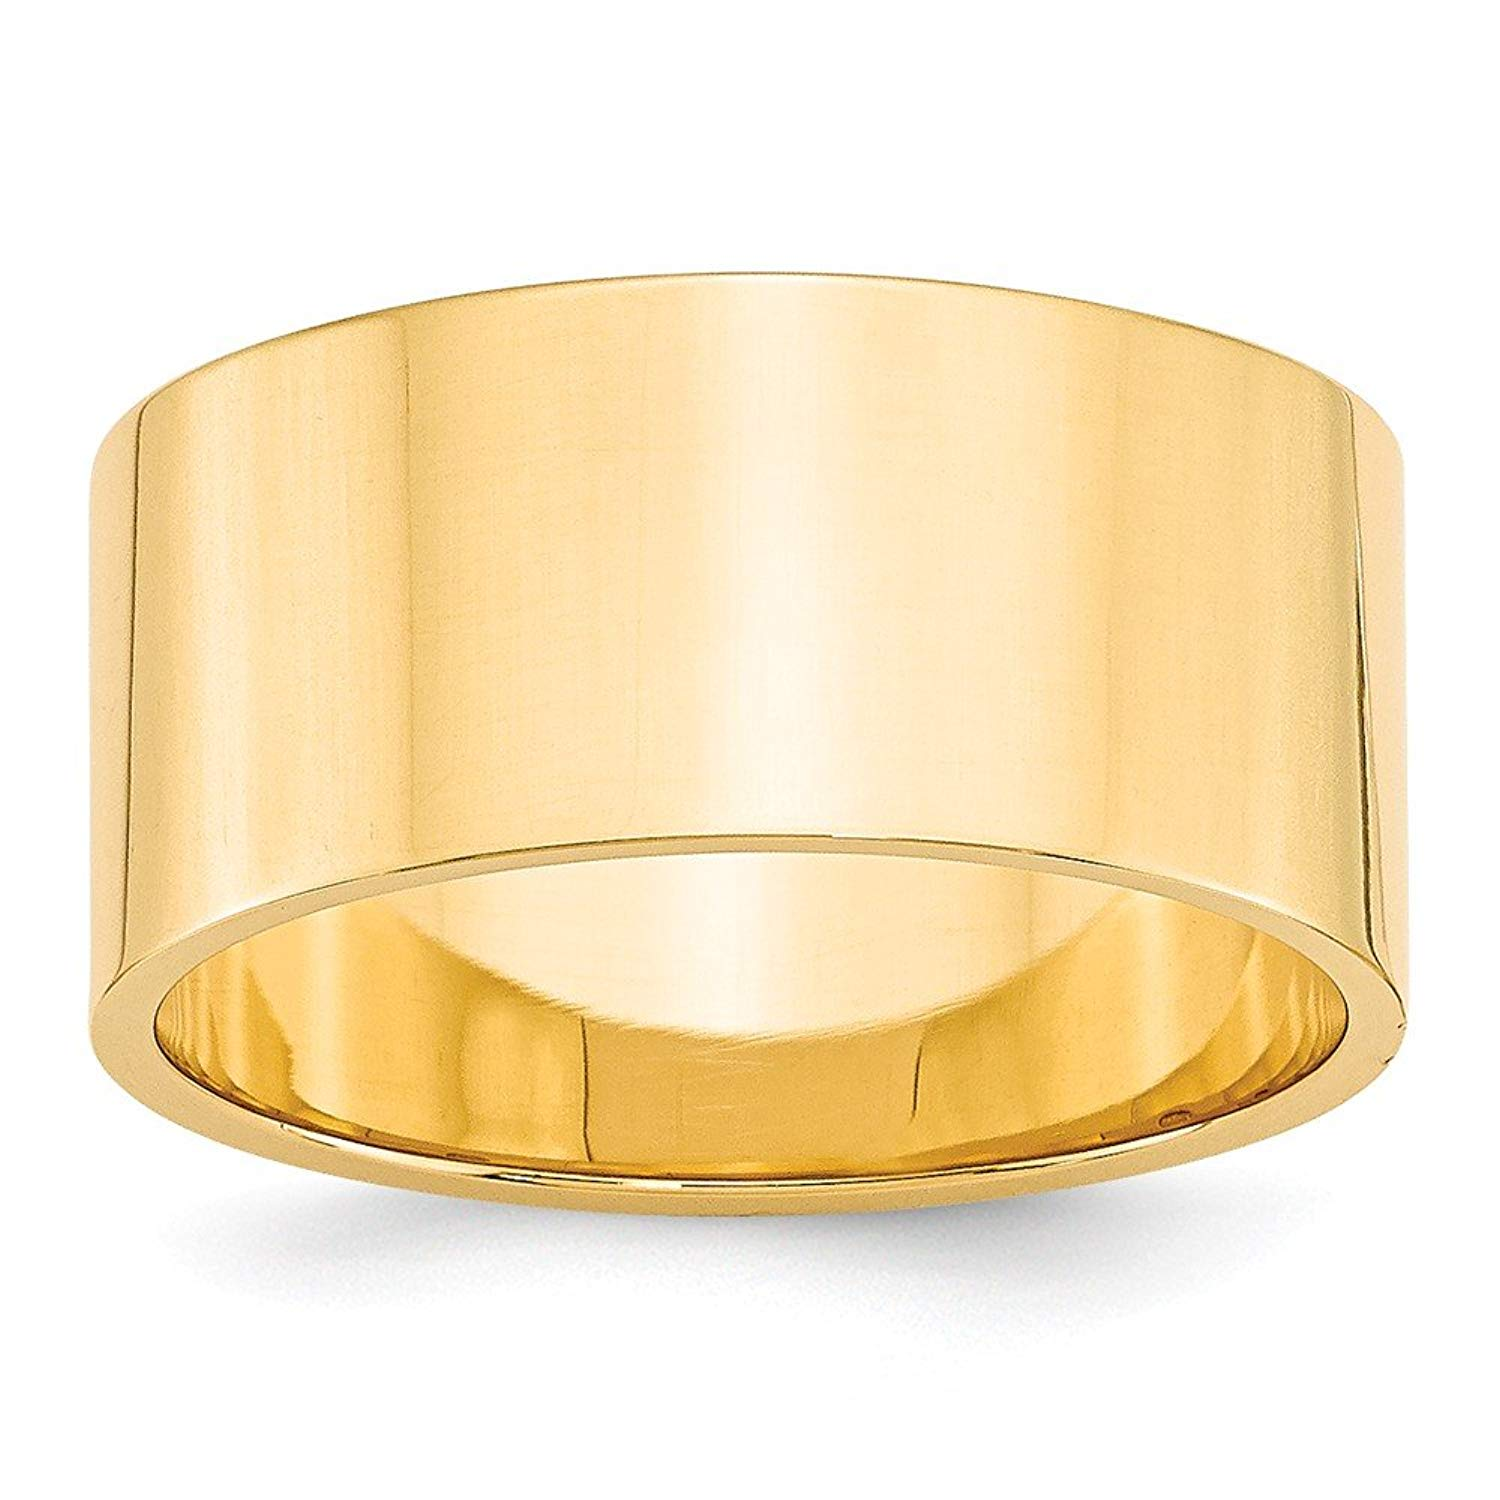 Top 10 Jewelry Gift 14KY 10mm LTW Flat Band Size 8